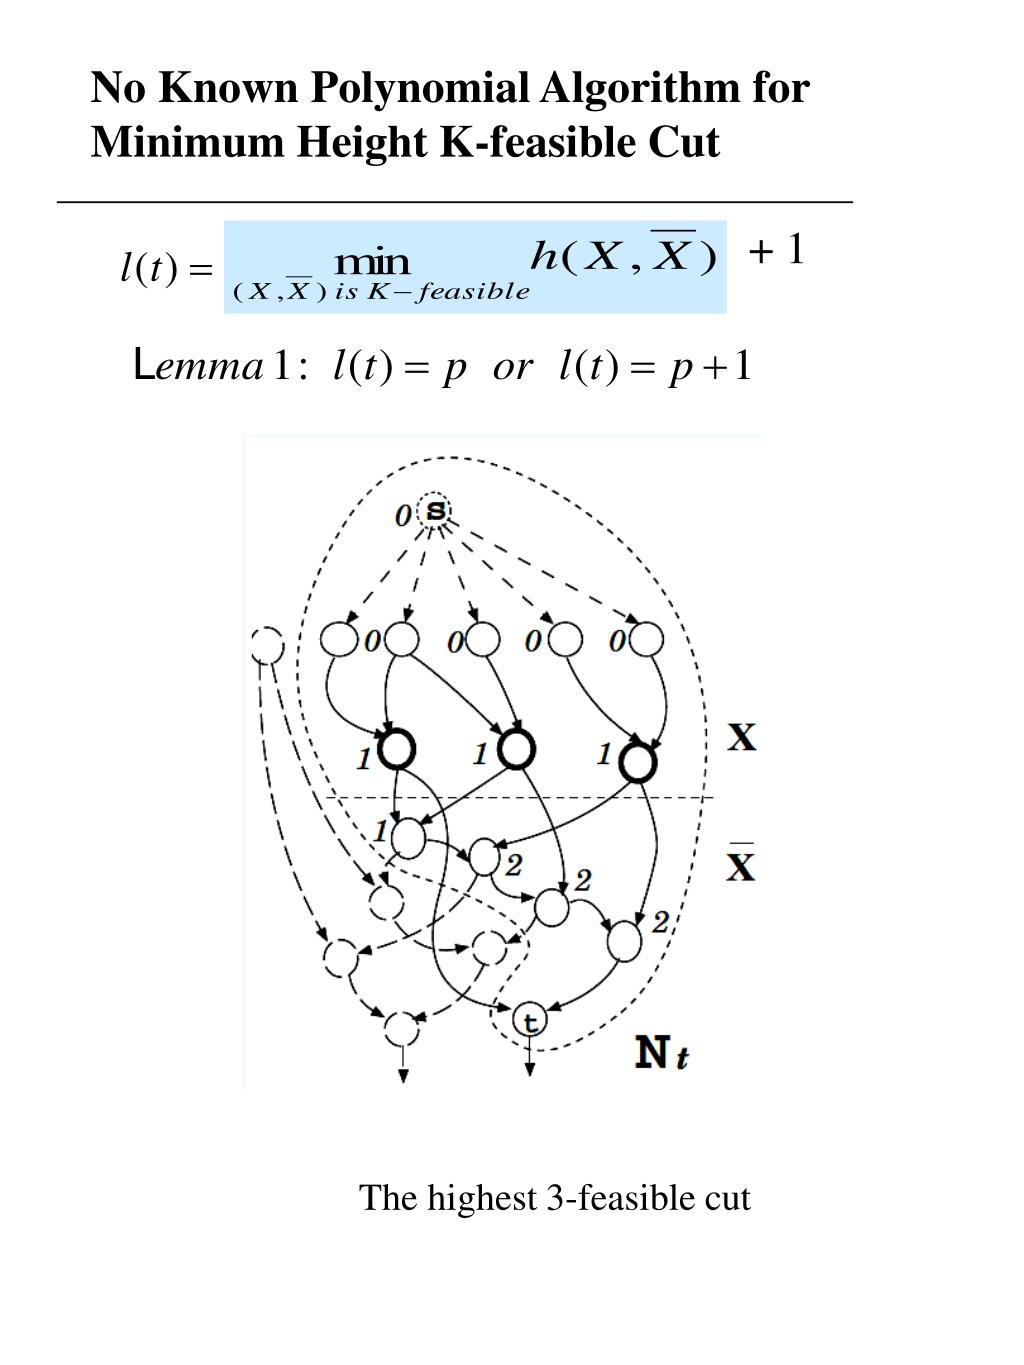 No Known Polynomial Algorithm for Minimum Height K-feasible Cut